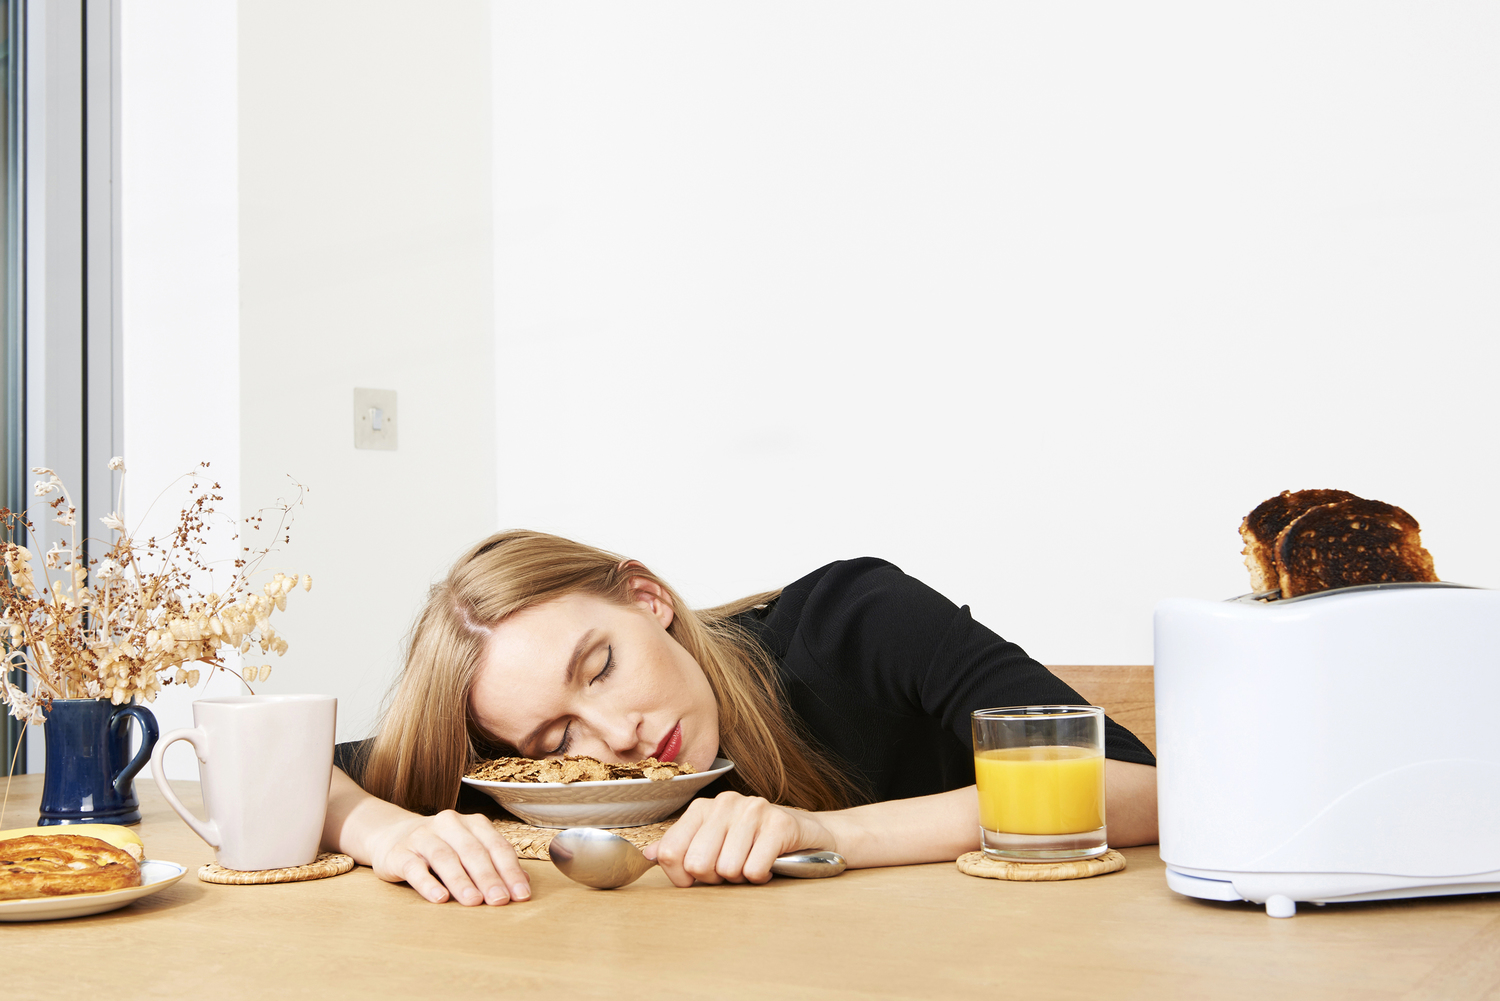 Shoot+for+ResMed+'Do+it+in+bed'+campaign+'Burnt+Breakfast'.jpg